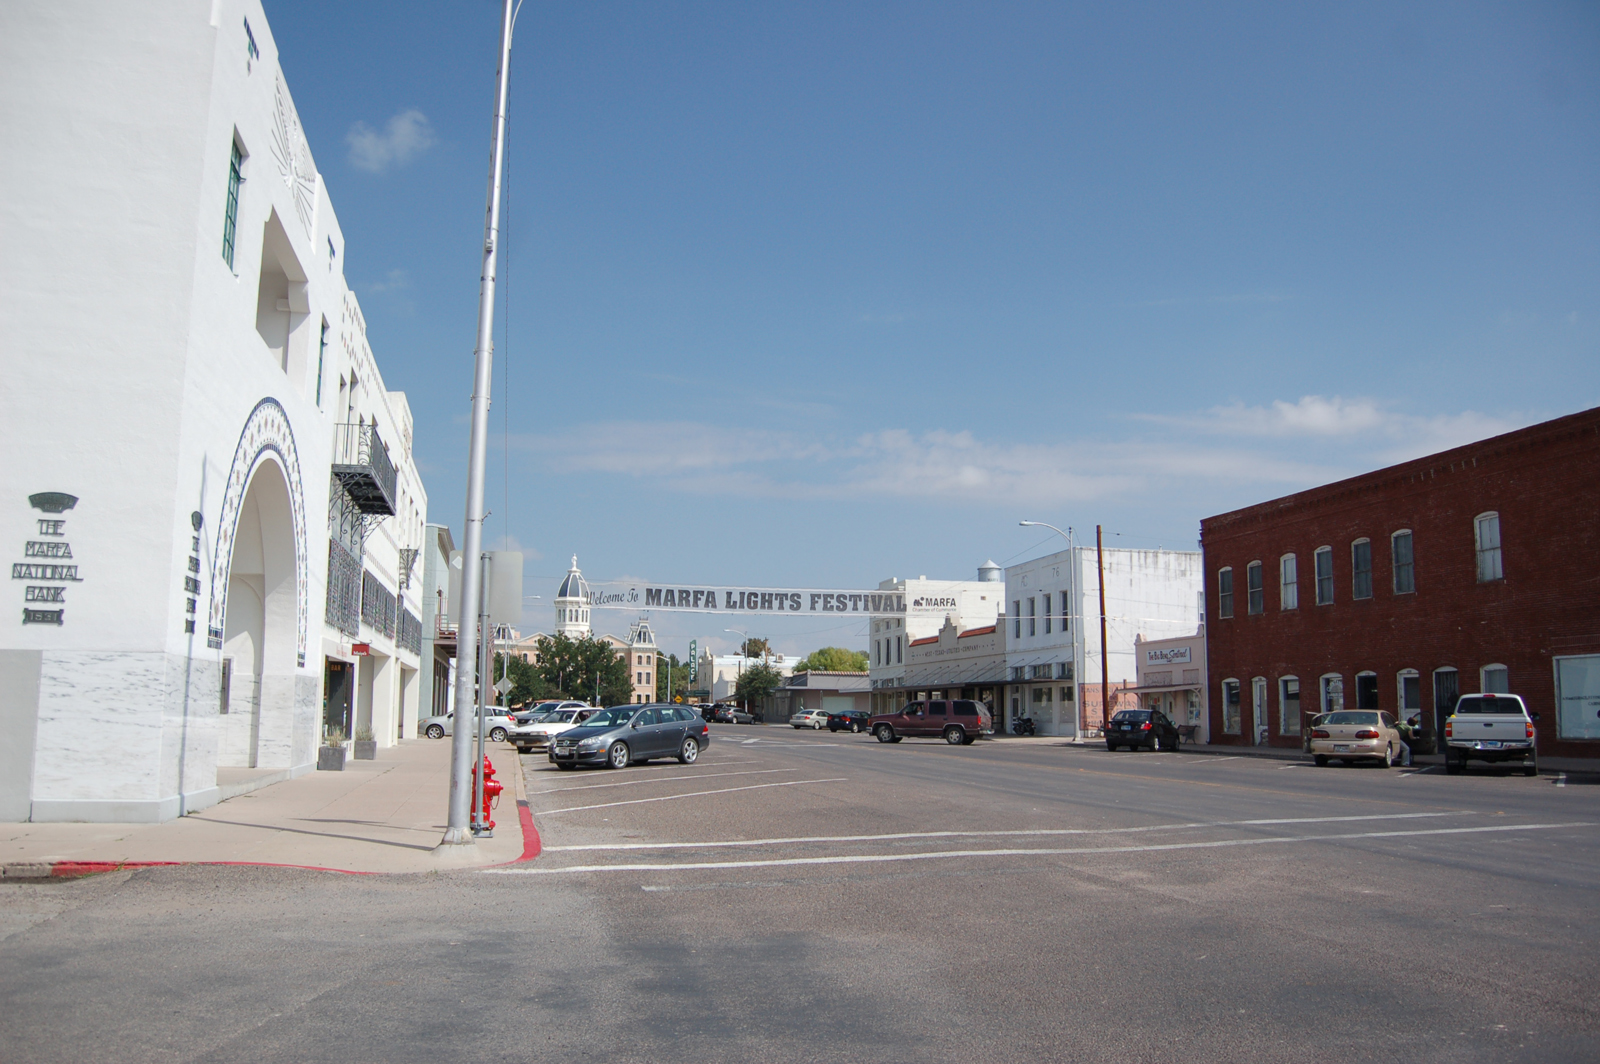 Downtown Marfa in all its glory. Amazingly, the entire town is comprised of just two square miles.